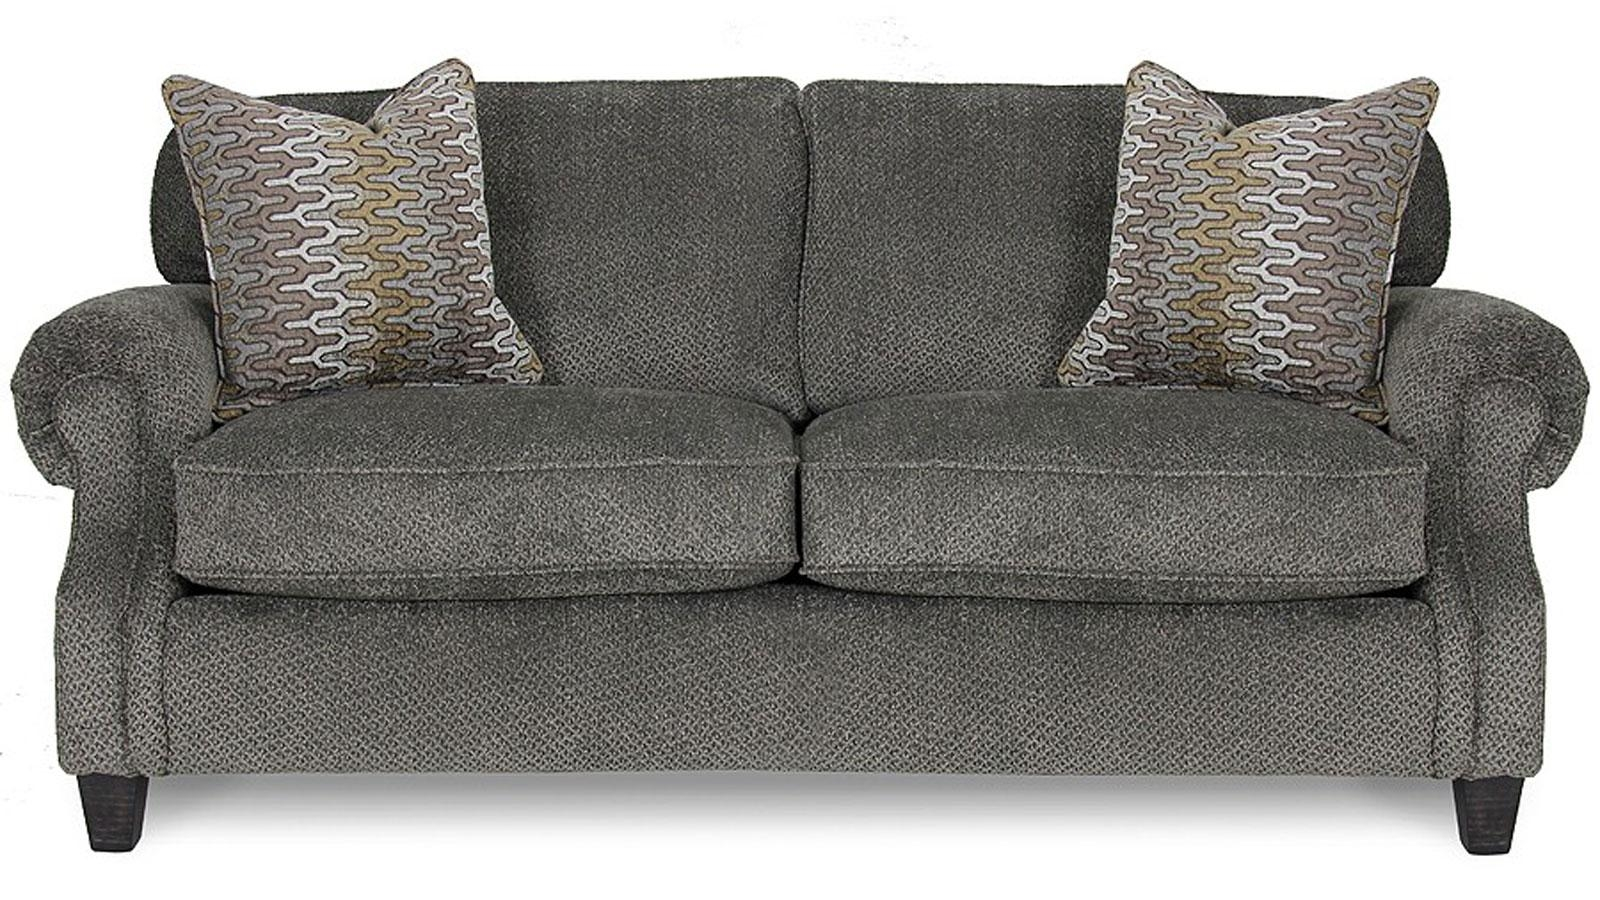 Emerson Pewter Full Sleeper Sofa | Gallery Furniture Within Sofas (Image 4 of 20)